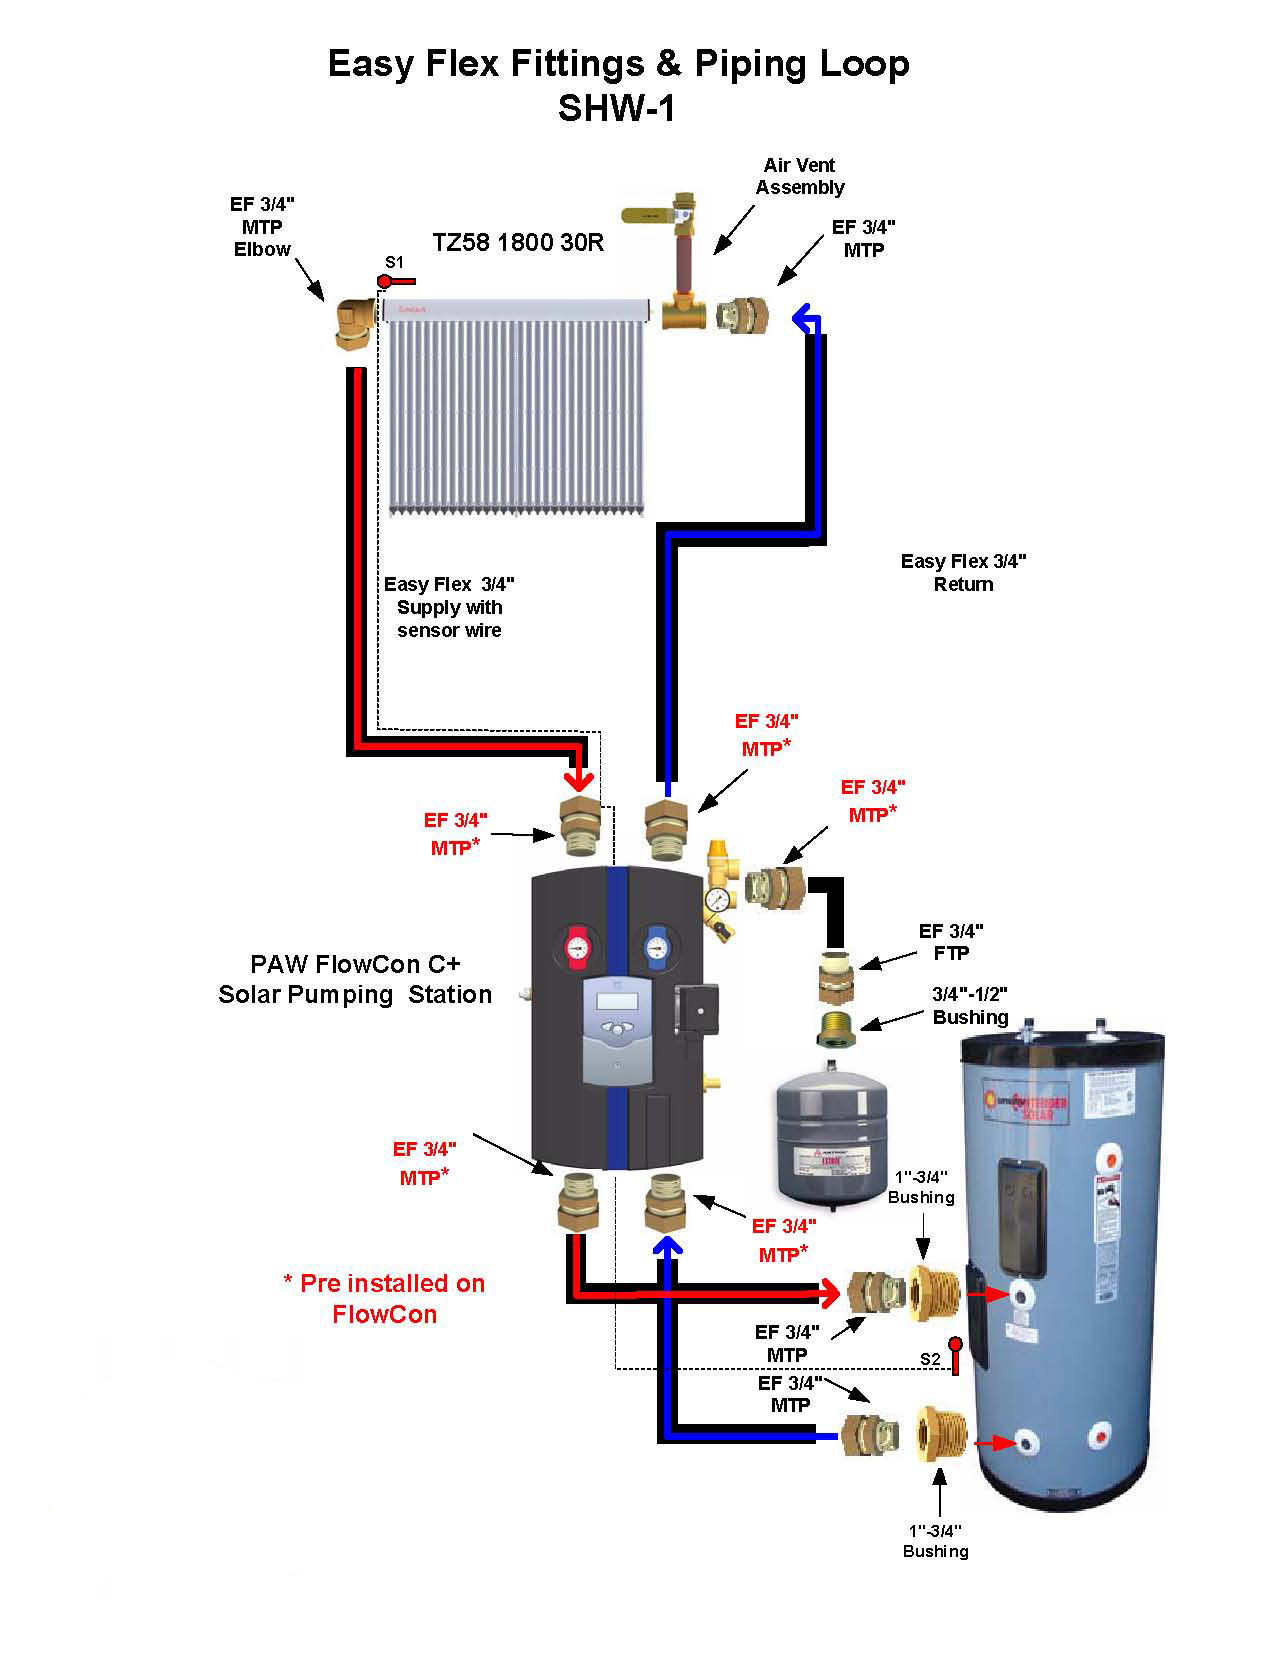 Cyprus Central Heating Plumbing Installations Sewers